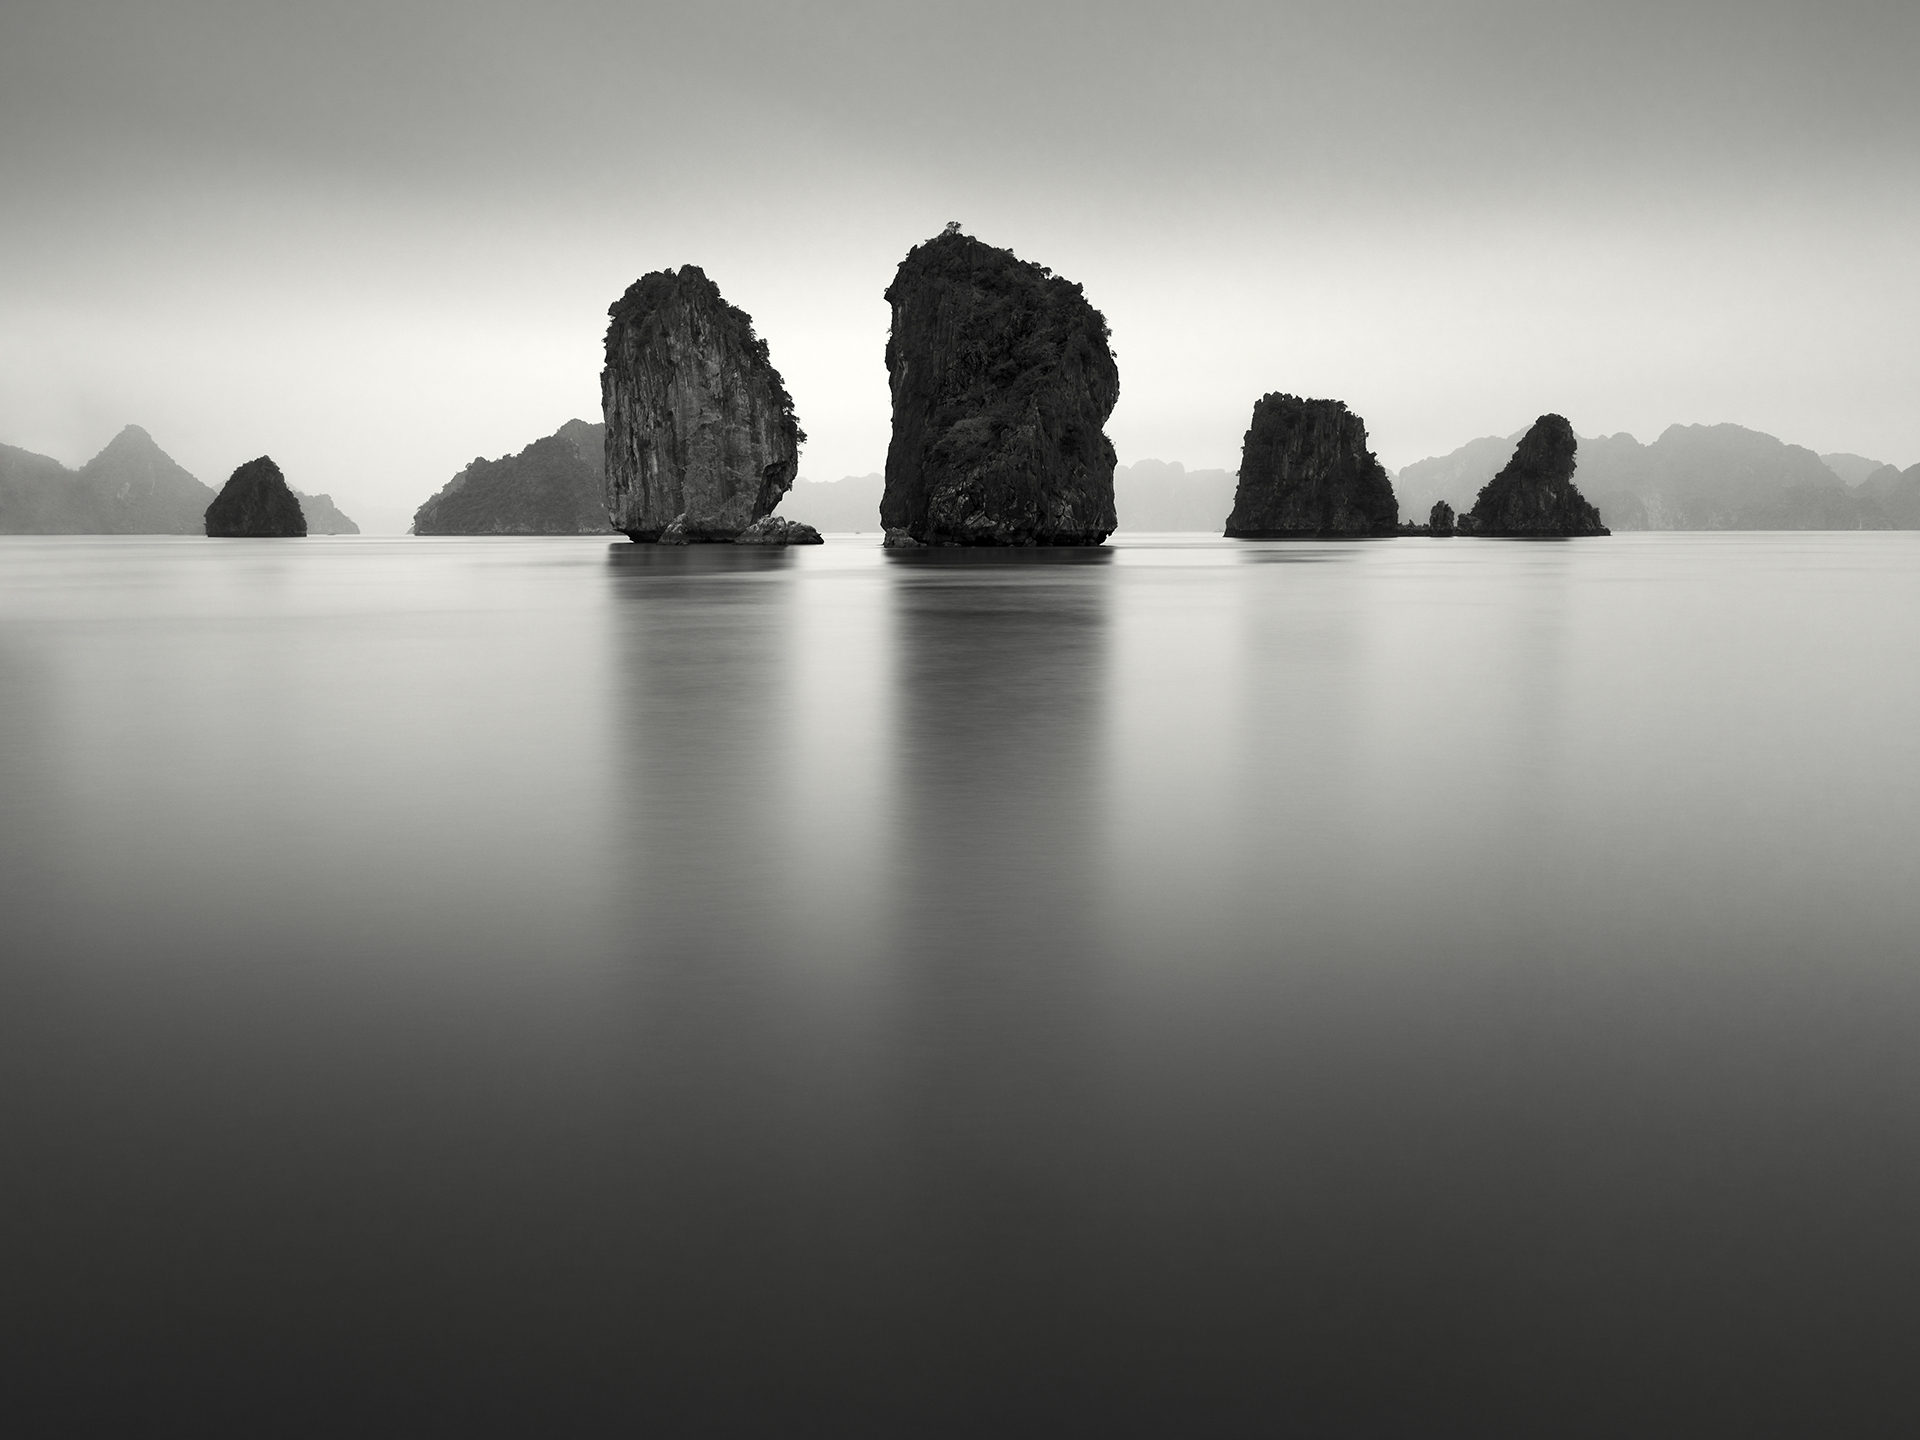 Southern Karsts, Ha Long Bay, Vietnam - 2011.jpg